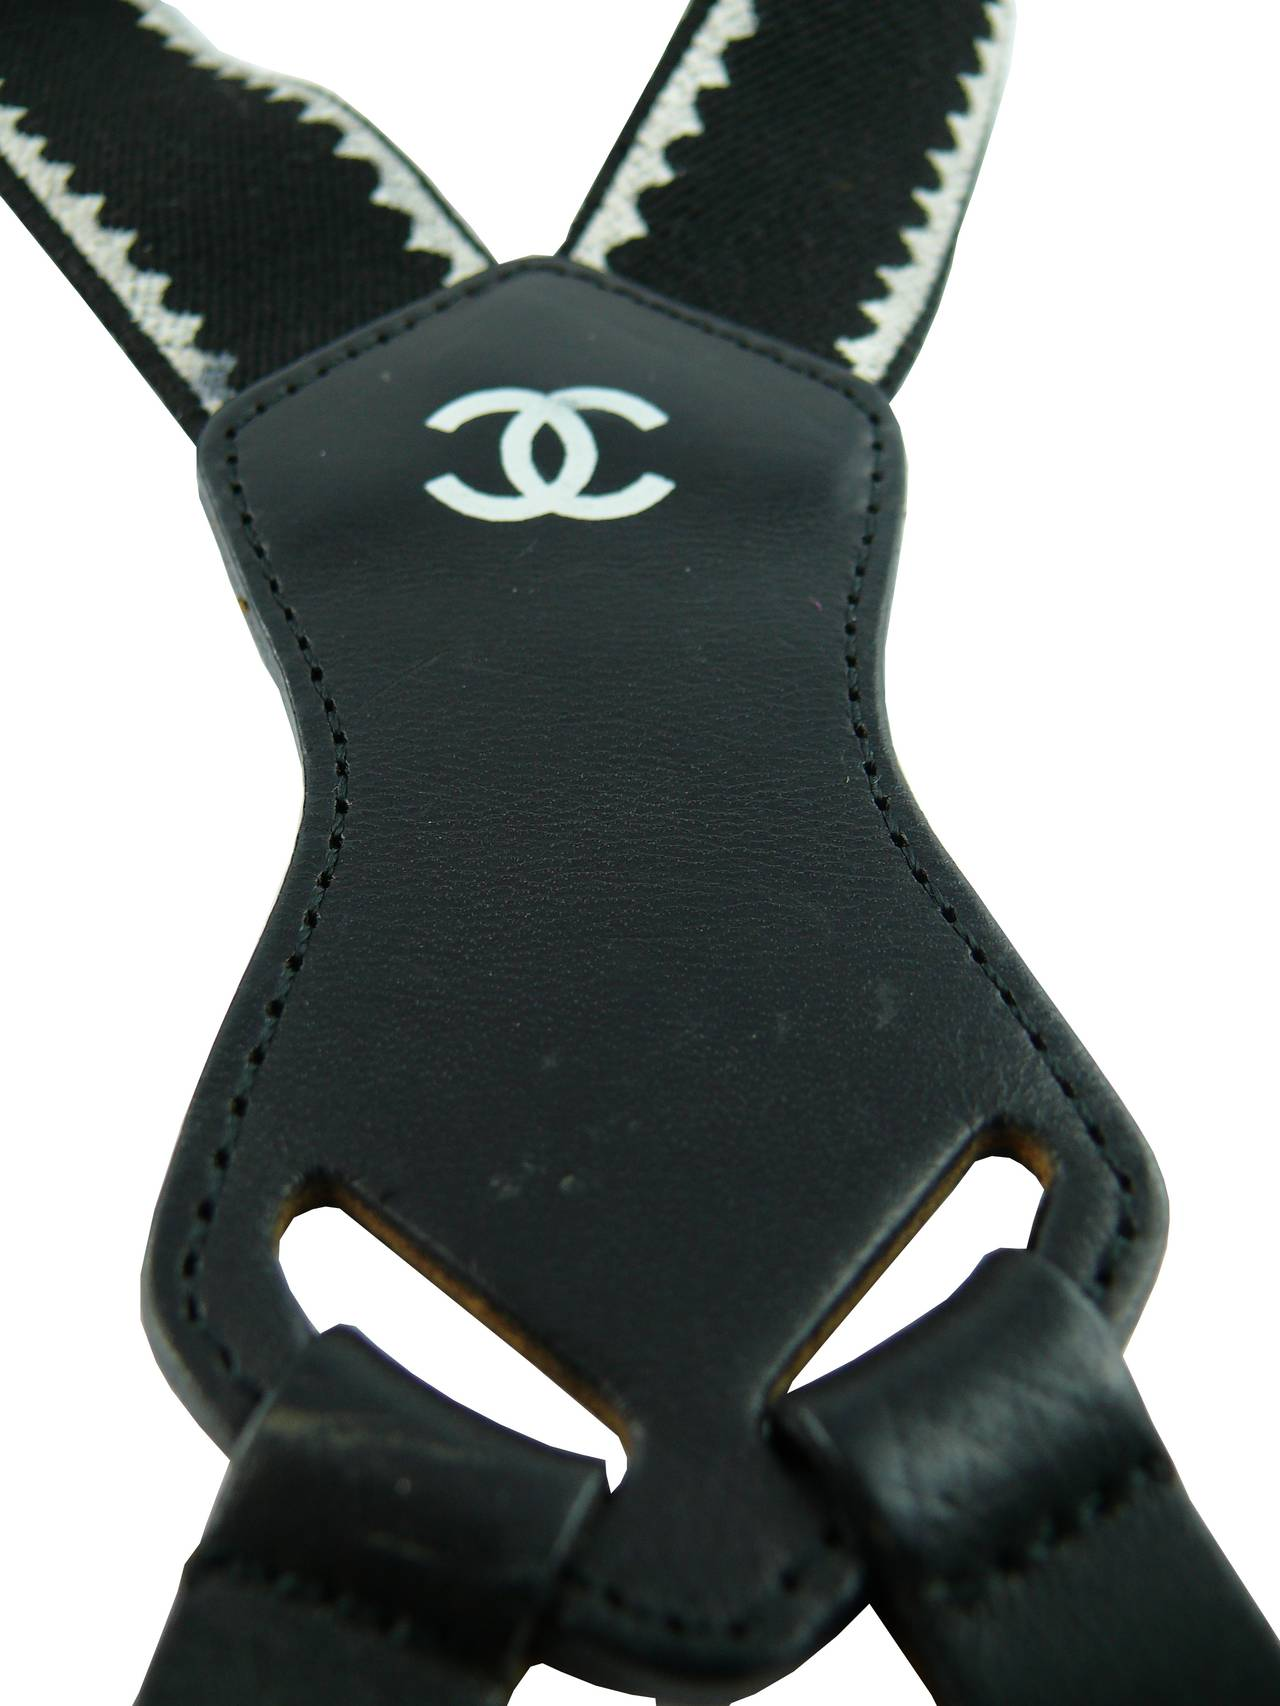 Chanel Vintage Iconic Rare Black and White Suspenders 8